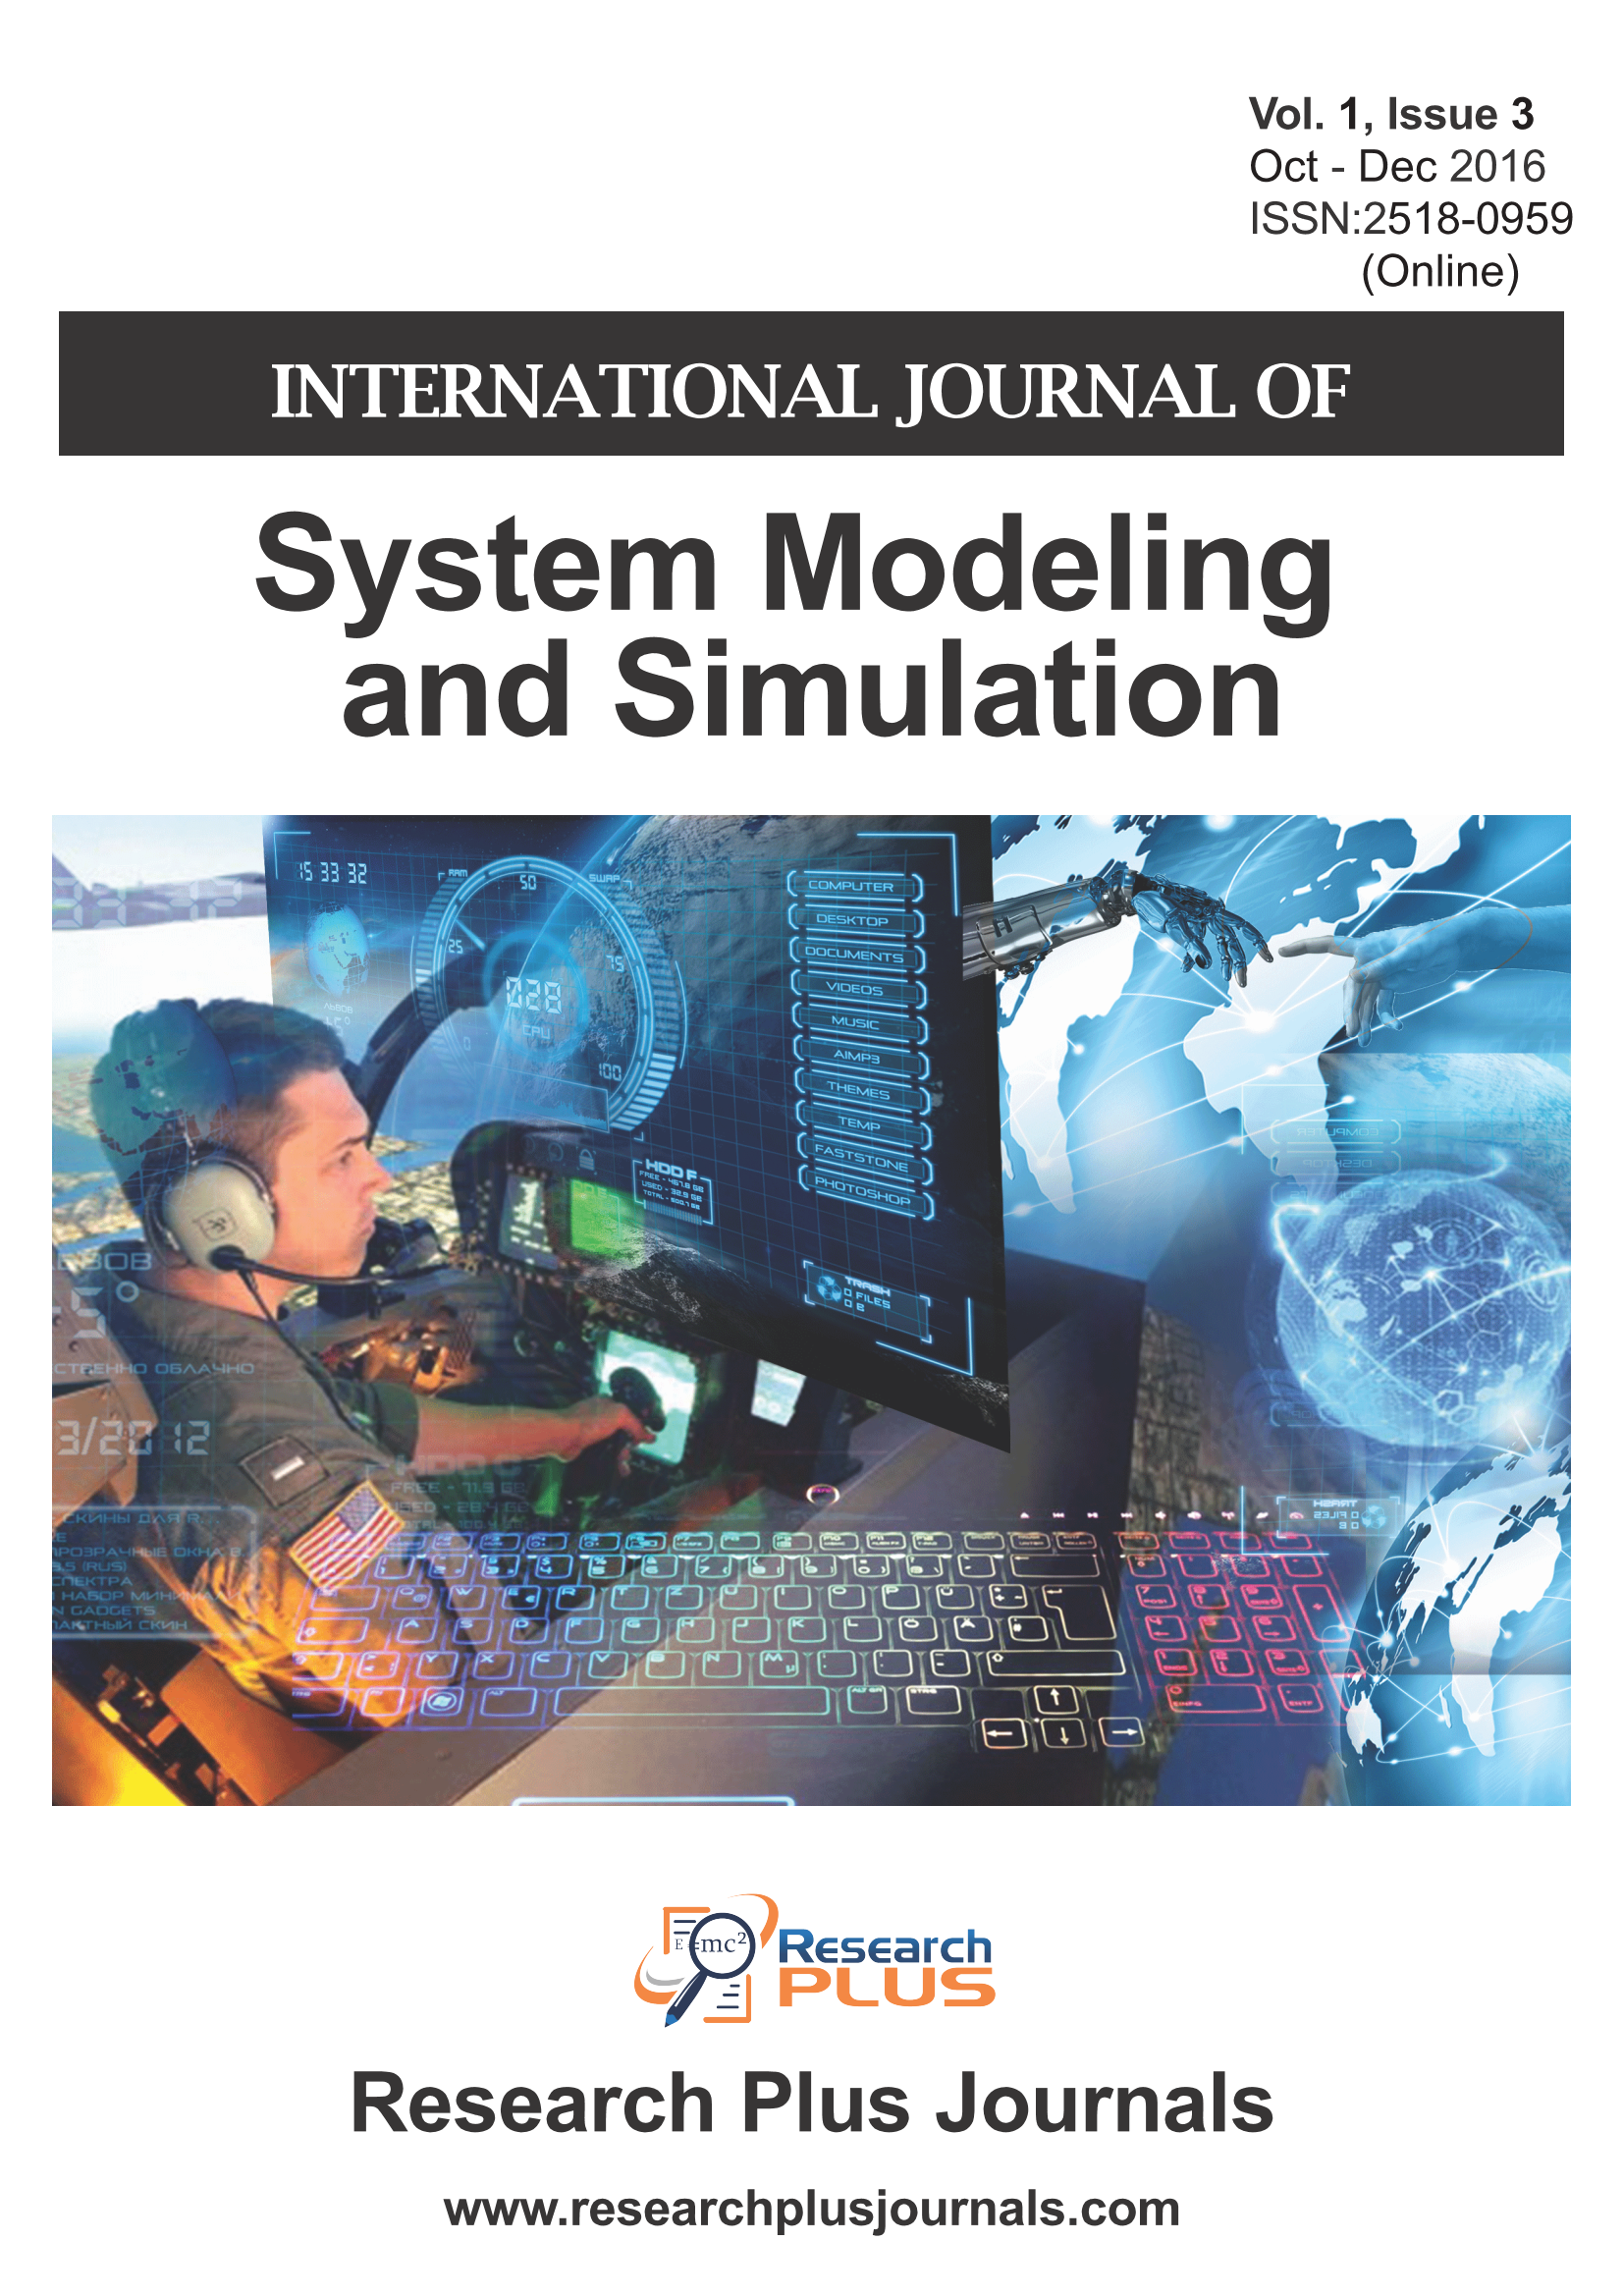 International Journal of System Modeling and Simulation (ISSN Online: 2518-0959) - Vol.1 Issue 3